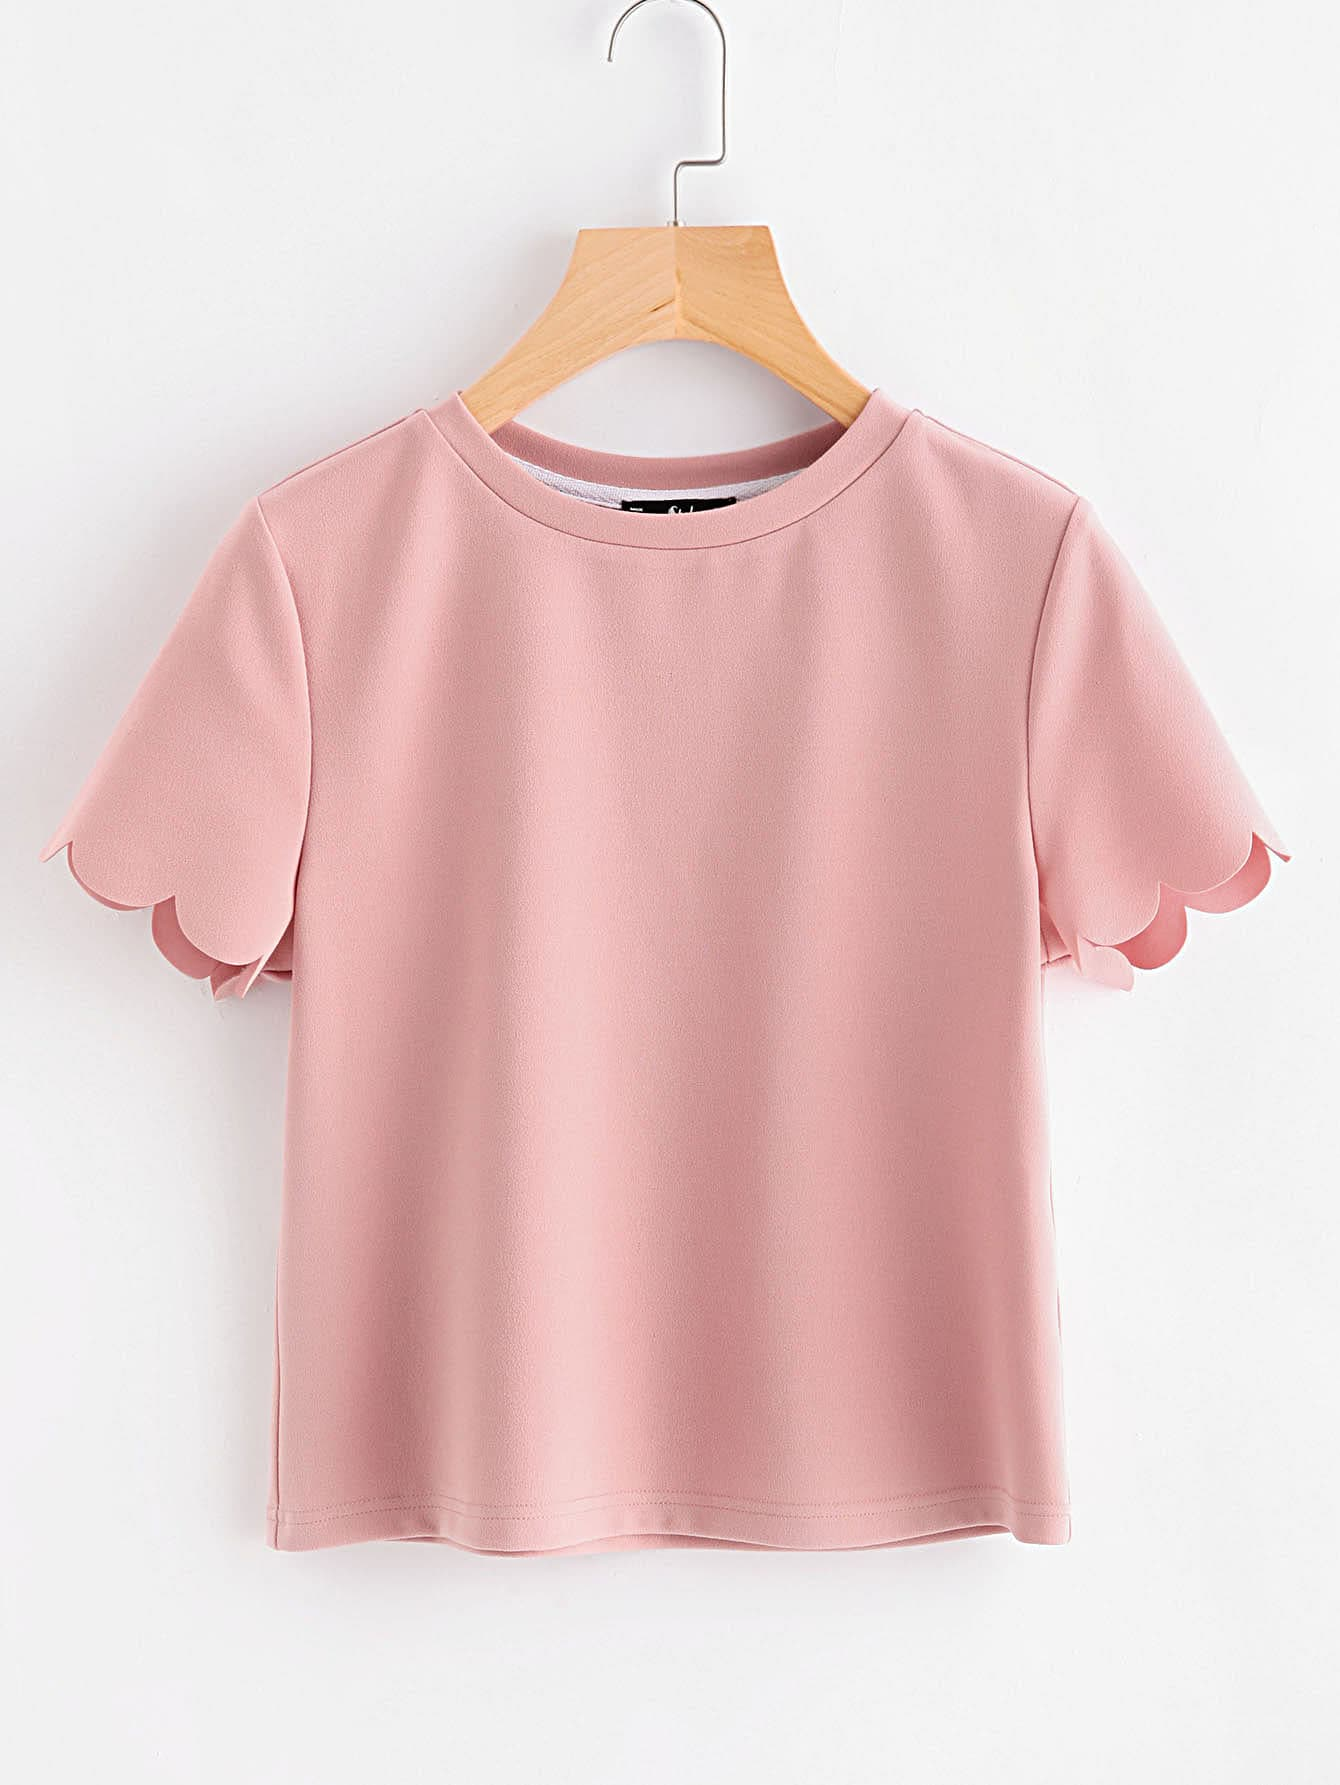 Scalloped Edge Sleeve Tee thumbnail